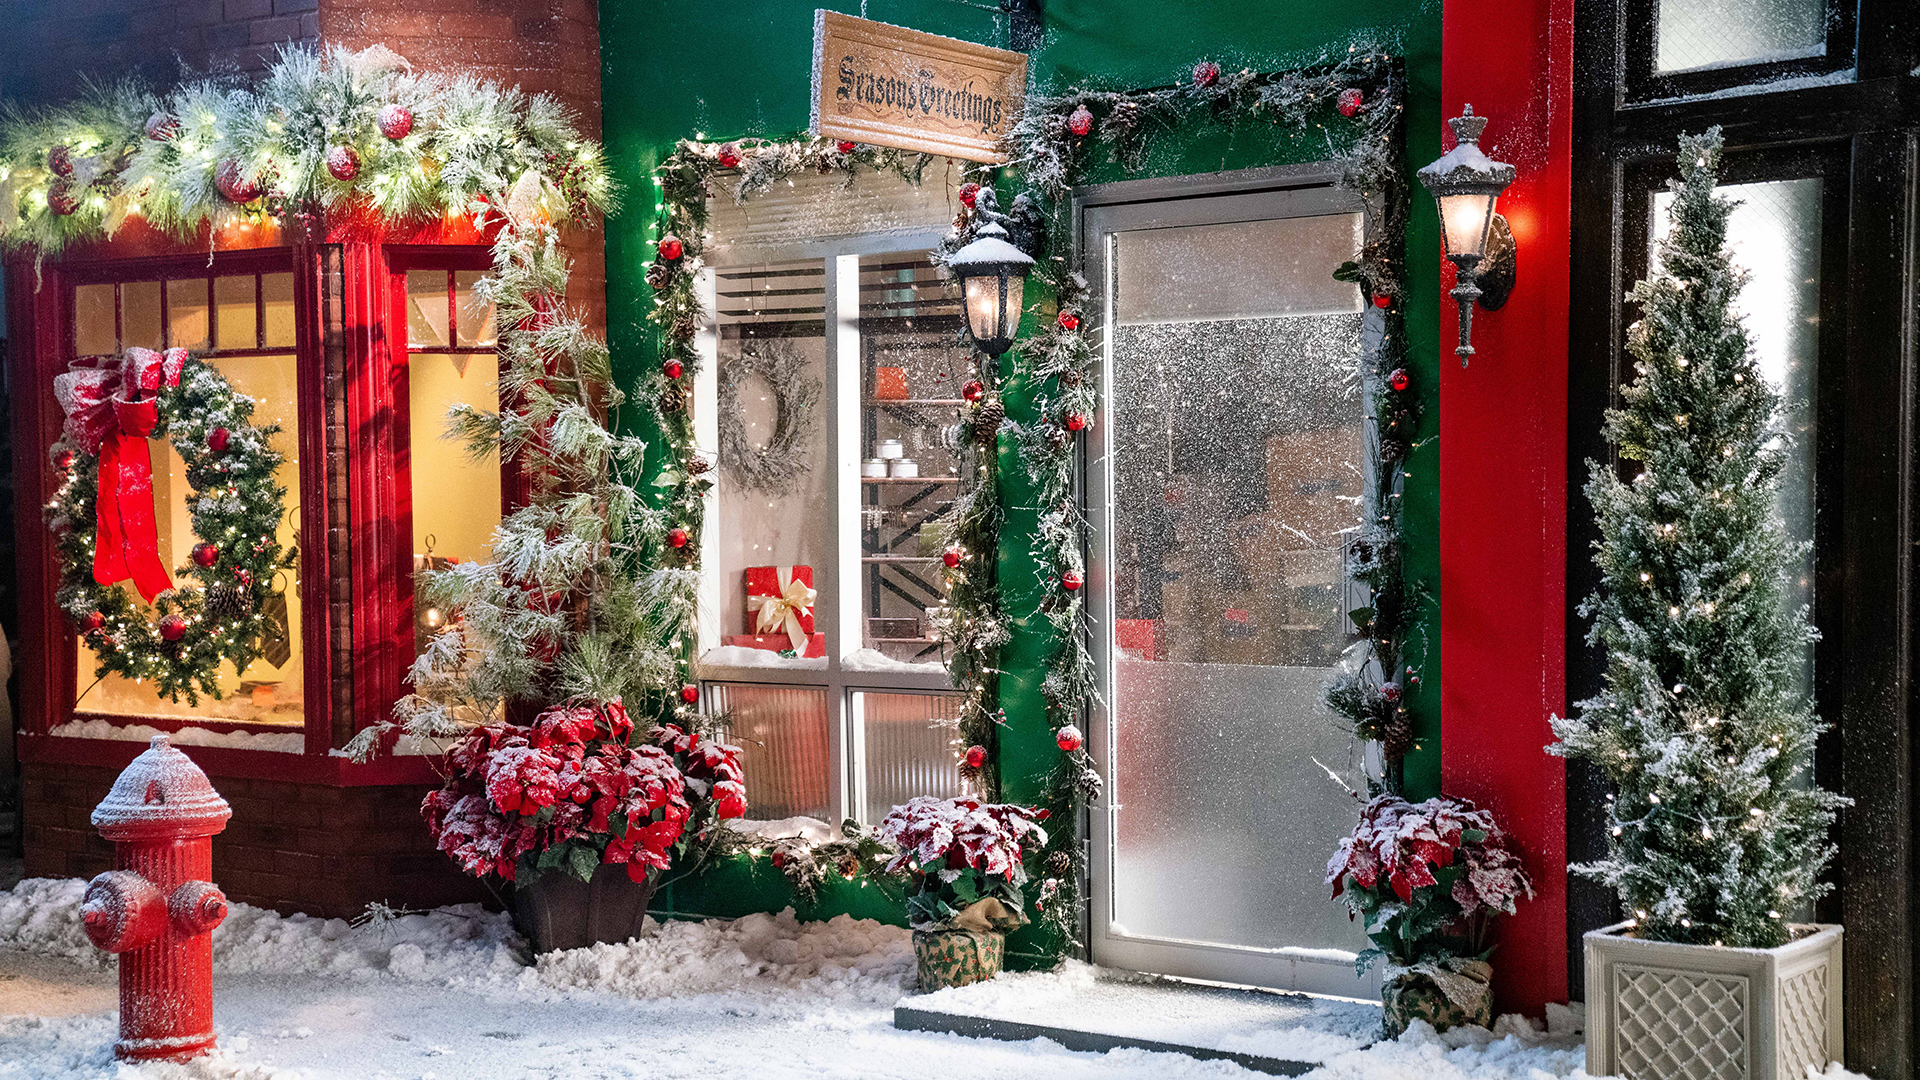 hallmark channel virtual christmas backgrounds hallmark channel hallmark channel virtual christmas backgrounds hallmark channel